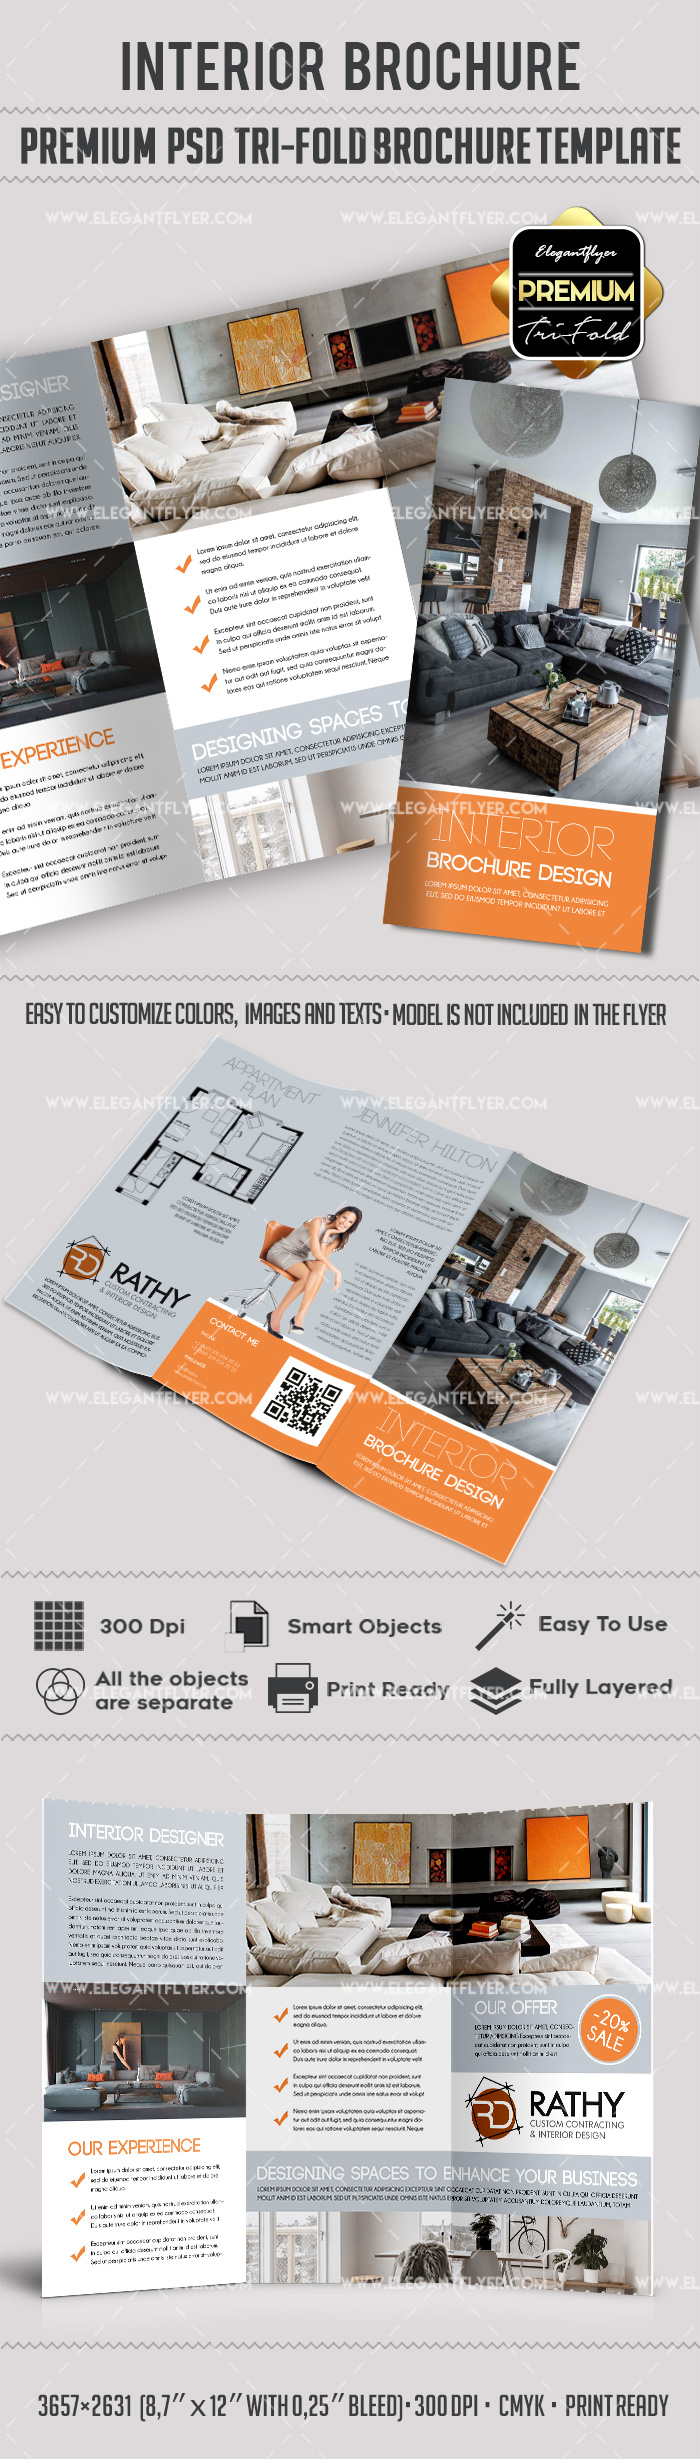 PSD Brochure for Interior Design